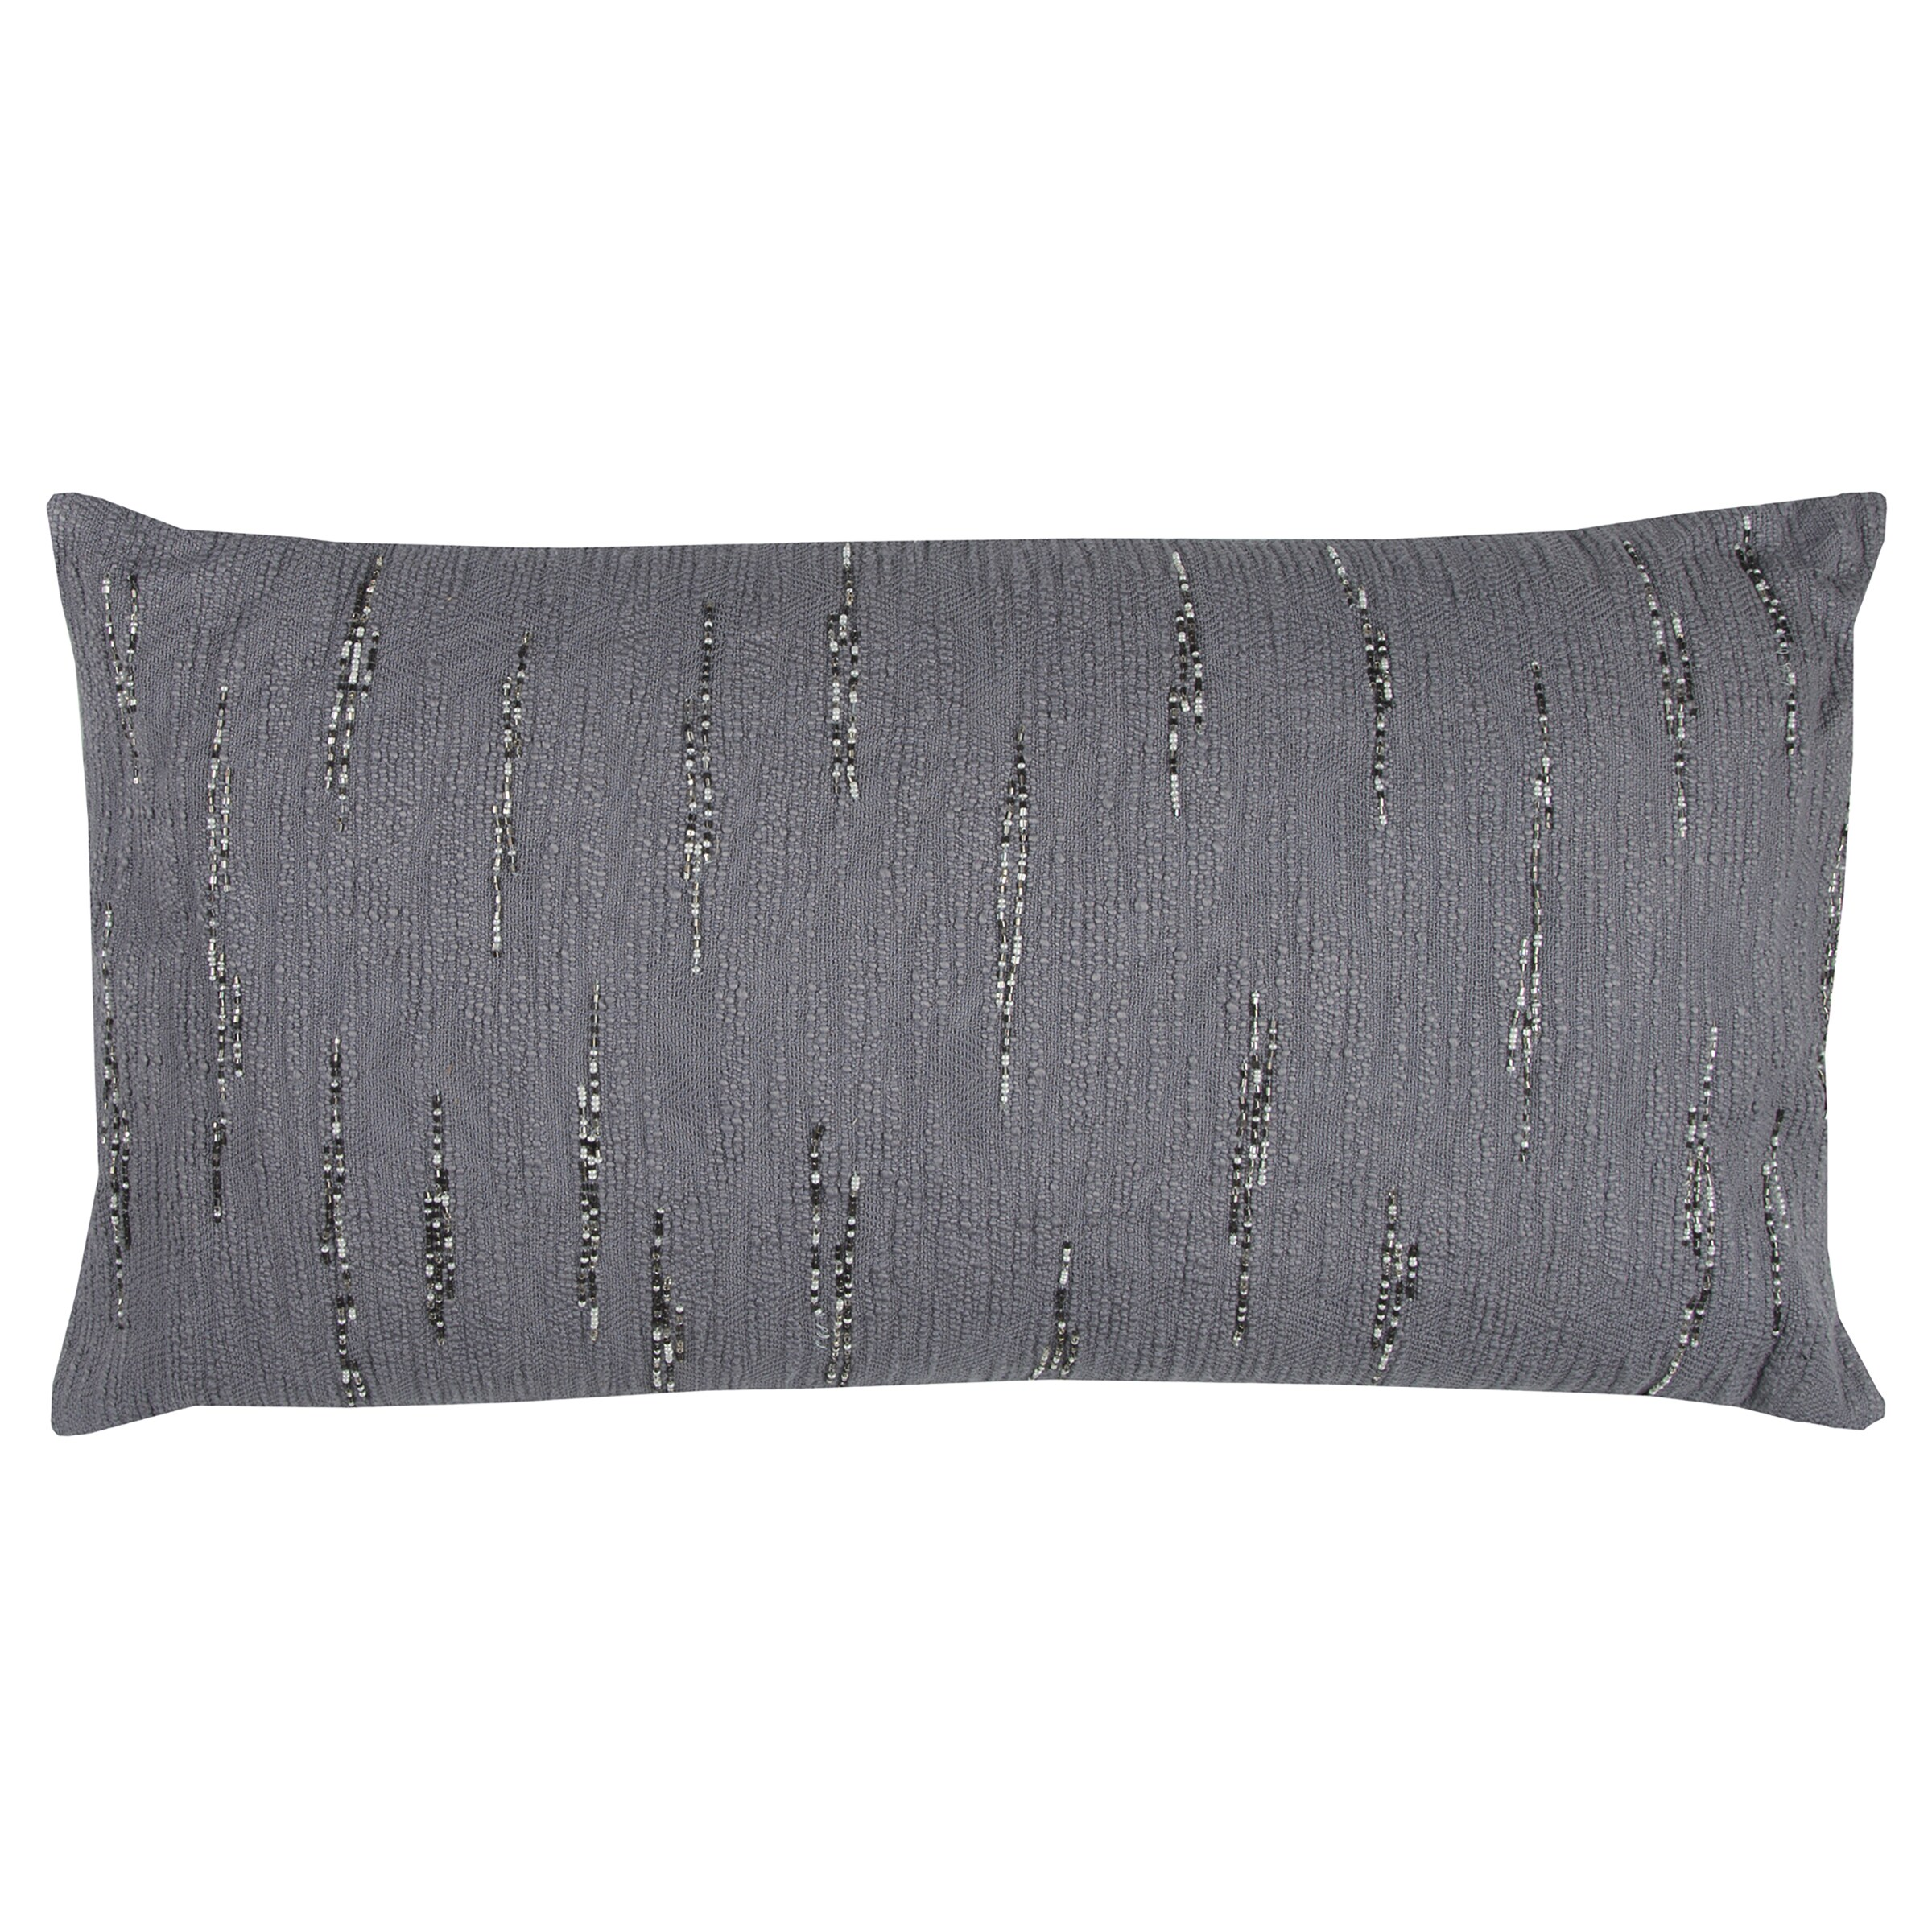 Rizzy Home Textured Beaded Grey Cotton 14-inch x 26-inch Throw Pillow (14 x 26 GREY Textured with beaded accents)